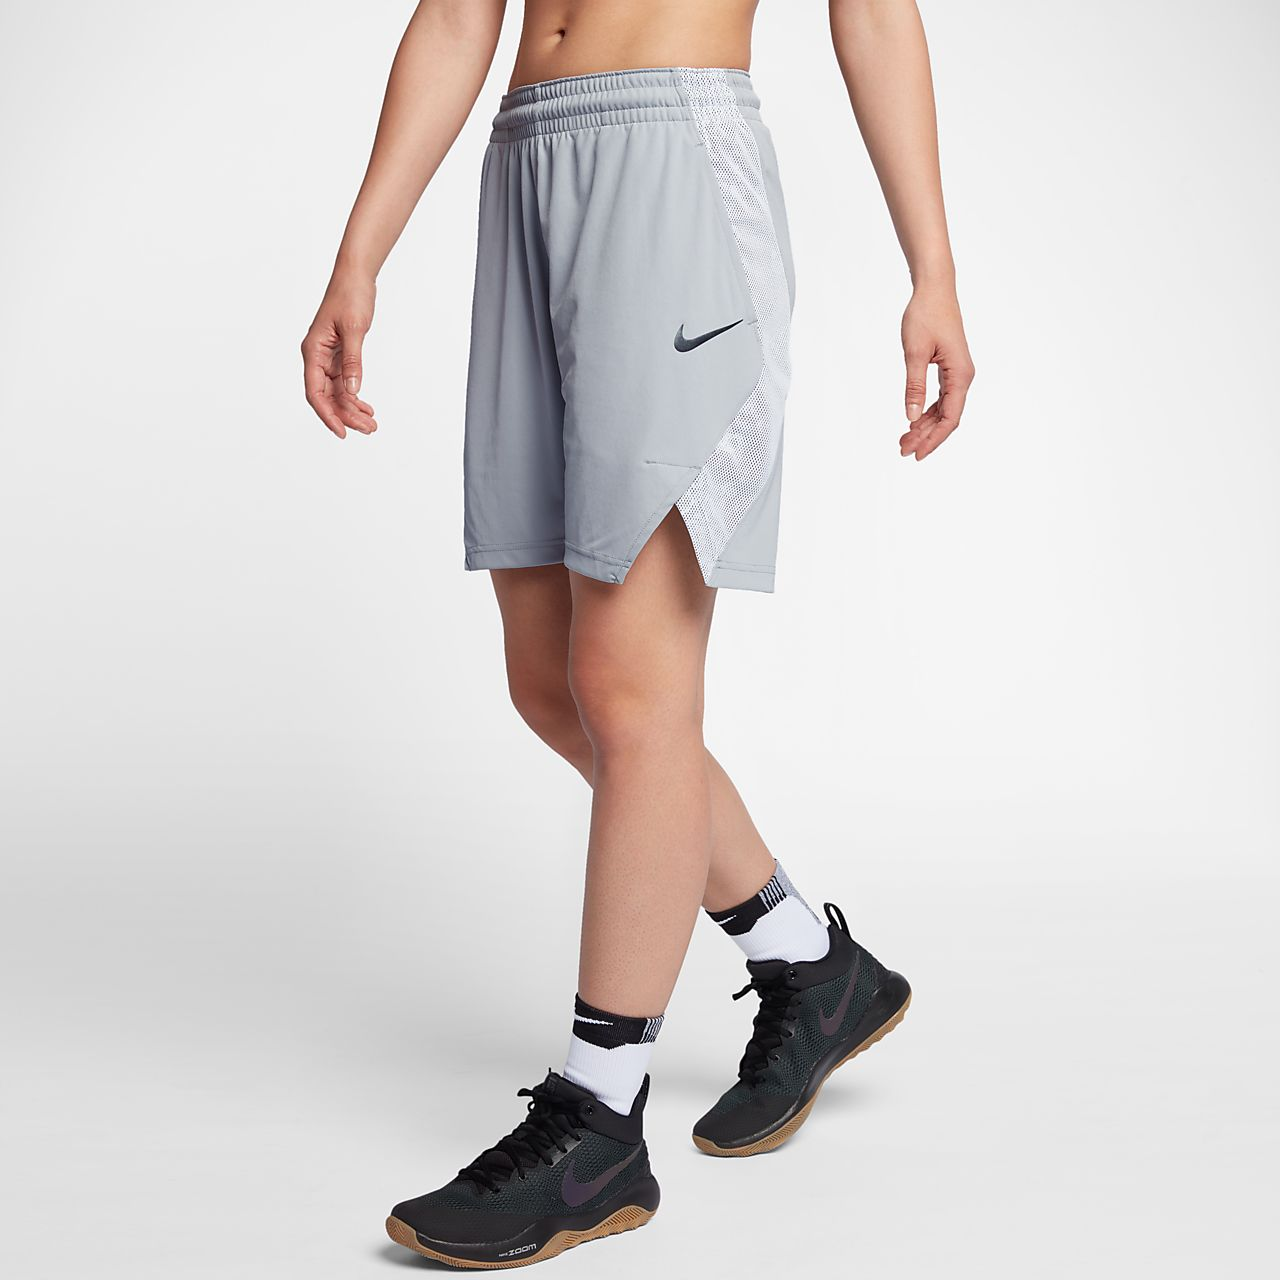 authentic new images of best service basket de BE femme short nike wOP80kn